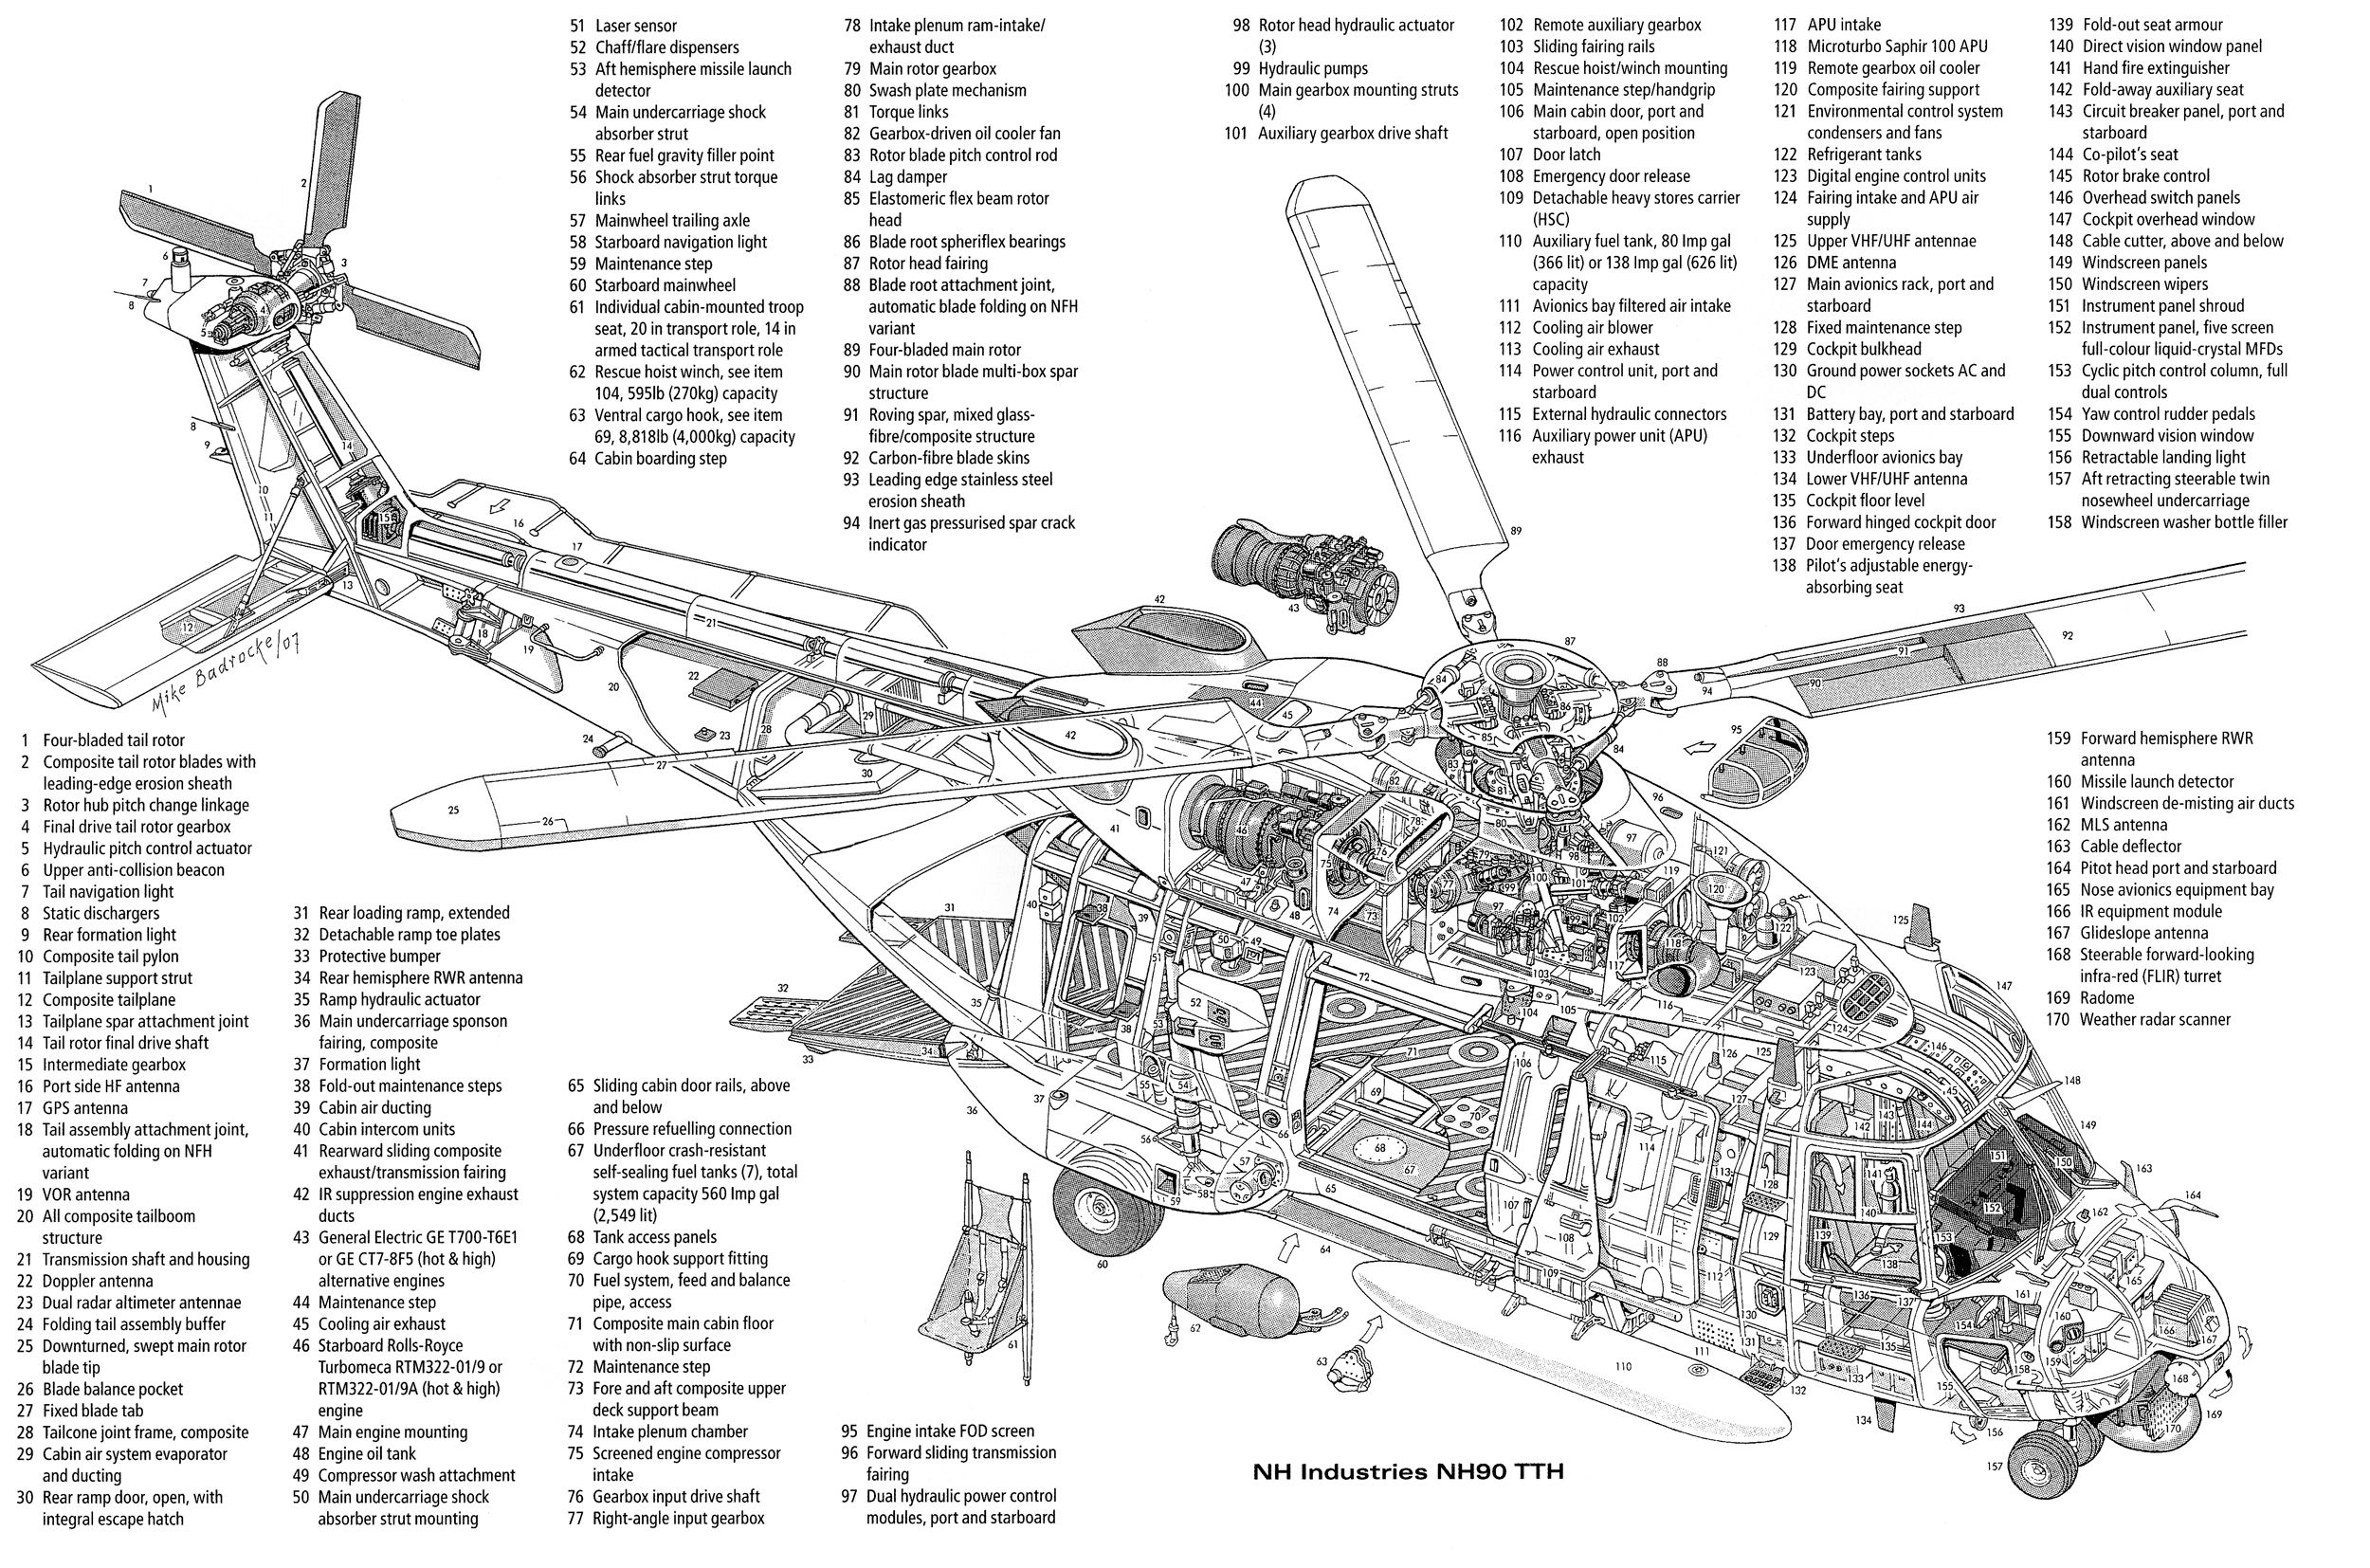 Human Eye Socket Diagram as well Carb mikuni VM18 carb exploded view parts additionally Dolphin Skeleton also Showthread in addition Tfg Patriot Bait Boat Electronics Mkii. on eagle parts diagram